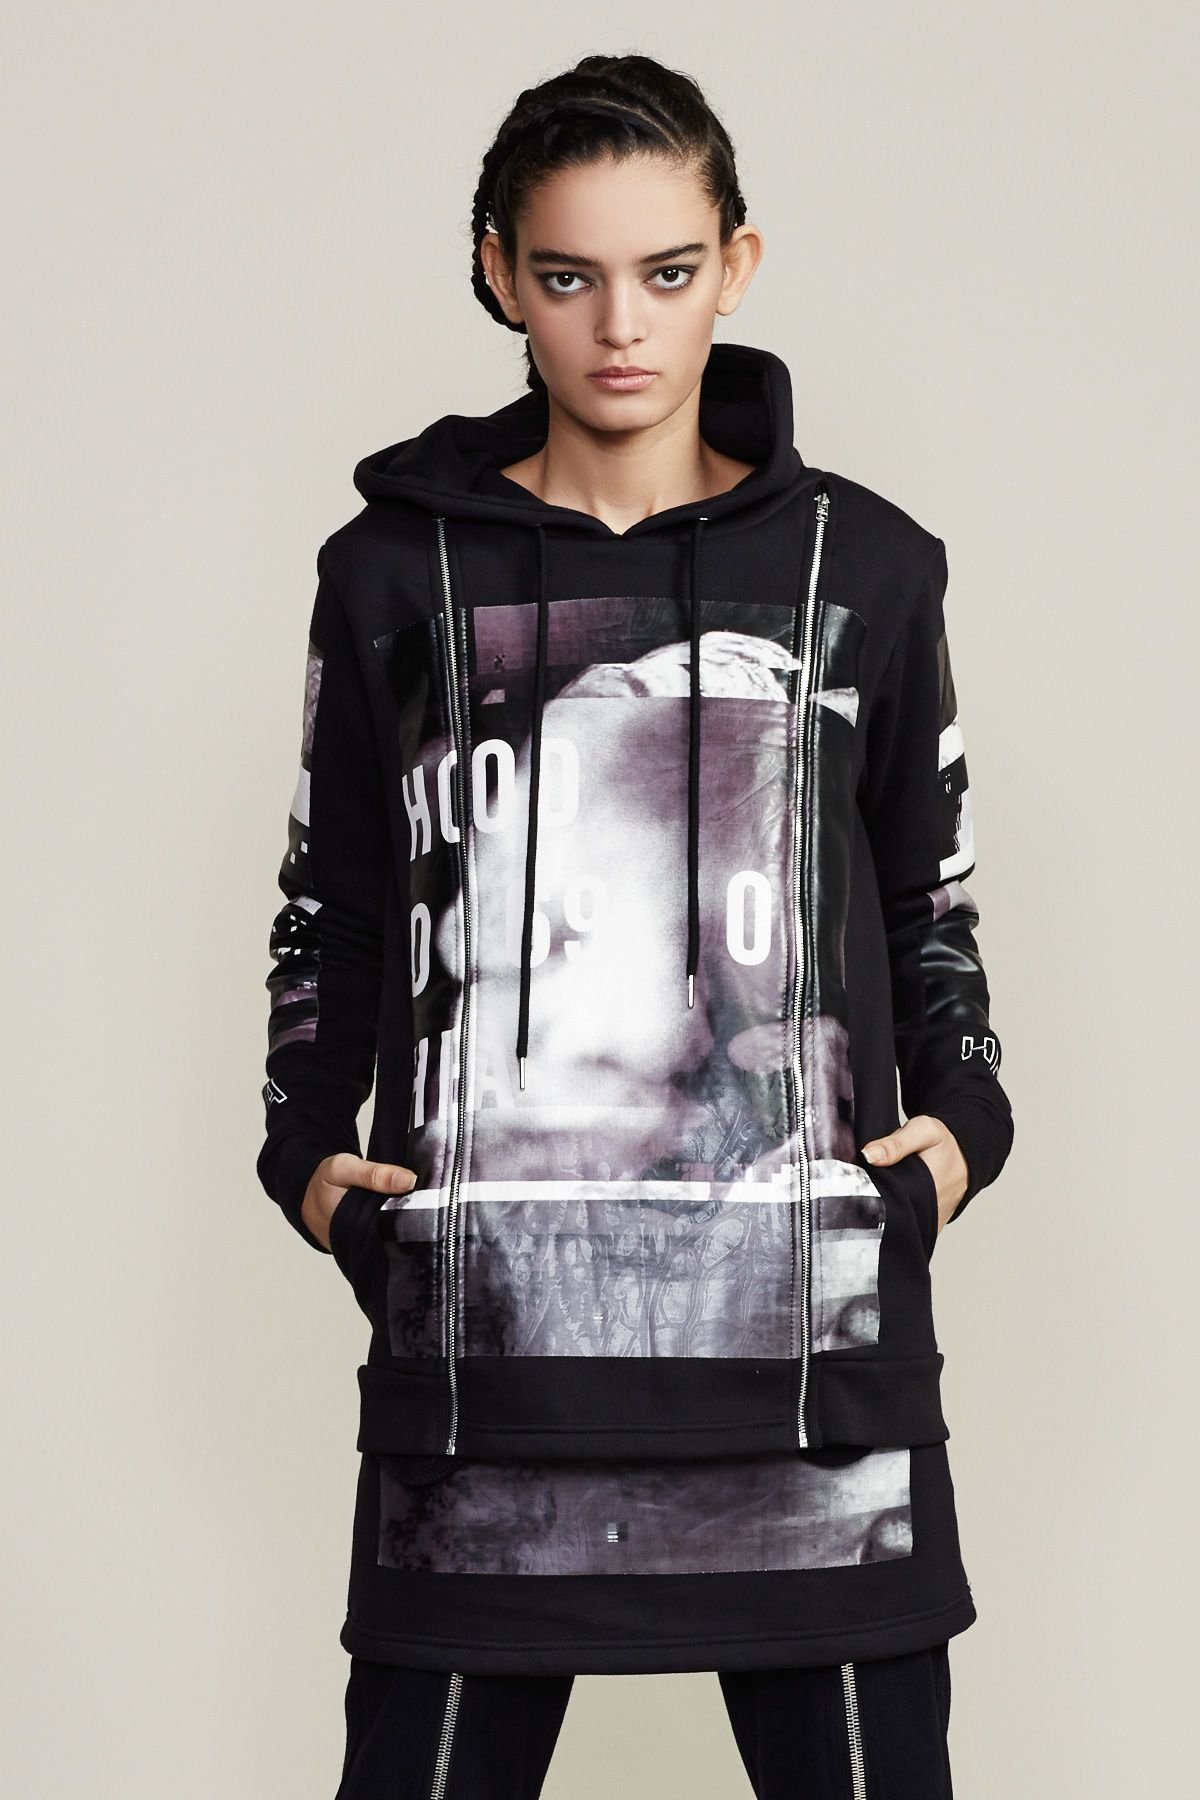 Not Just For Boys: Hood By Air Women's Fall/Winter 2014